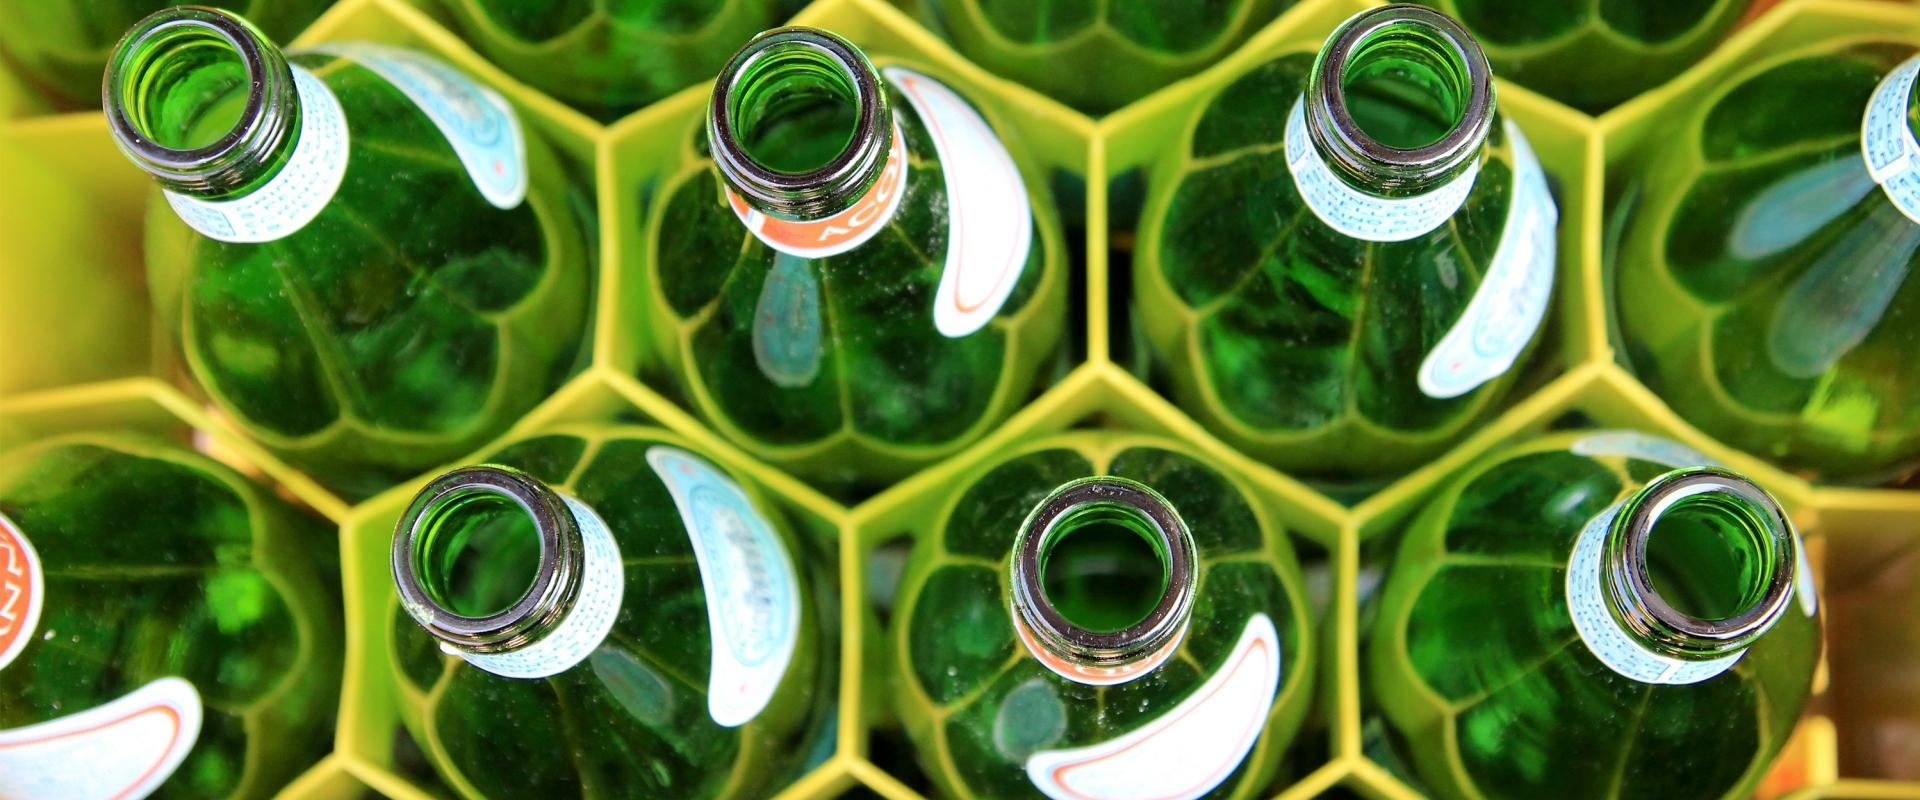 10 Top Tips for Cutting Down on Plastic